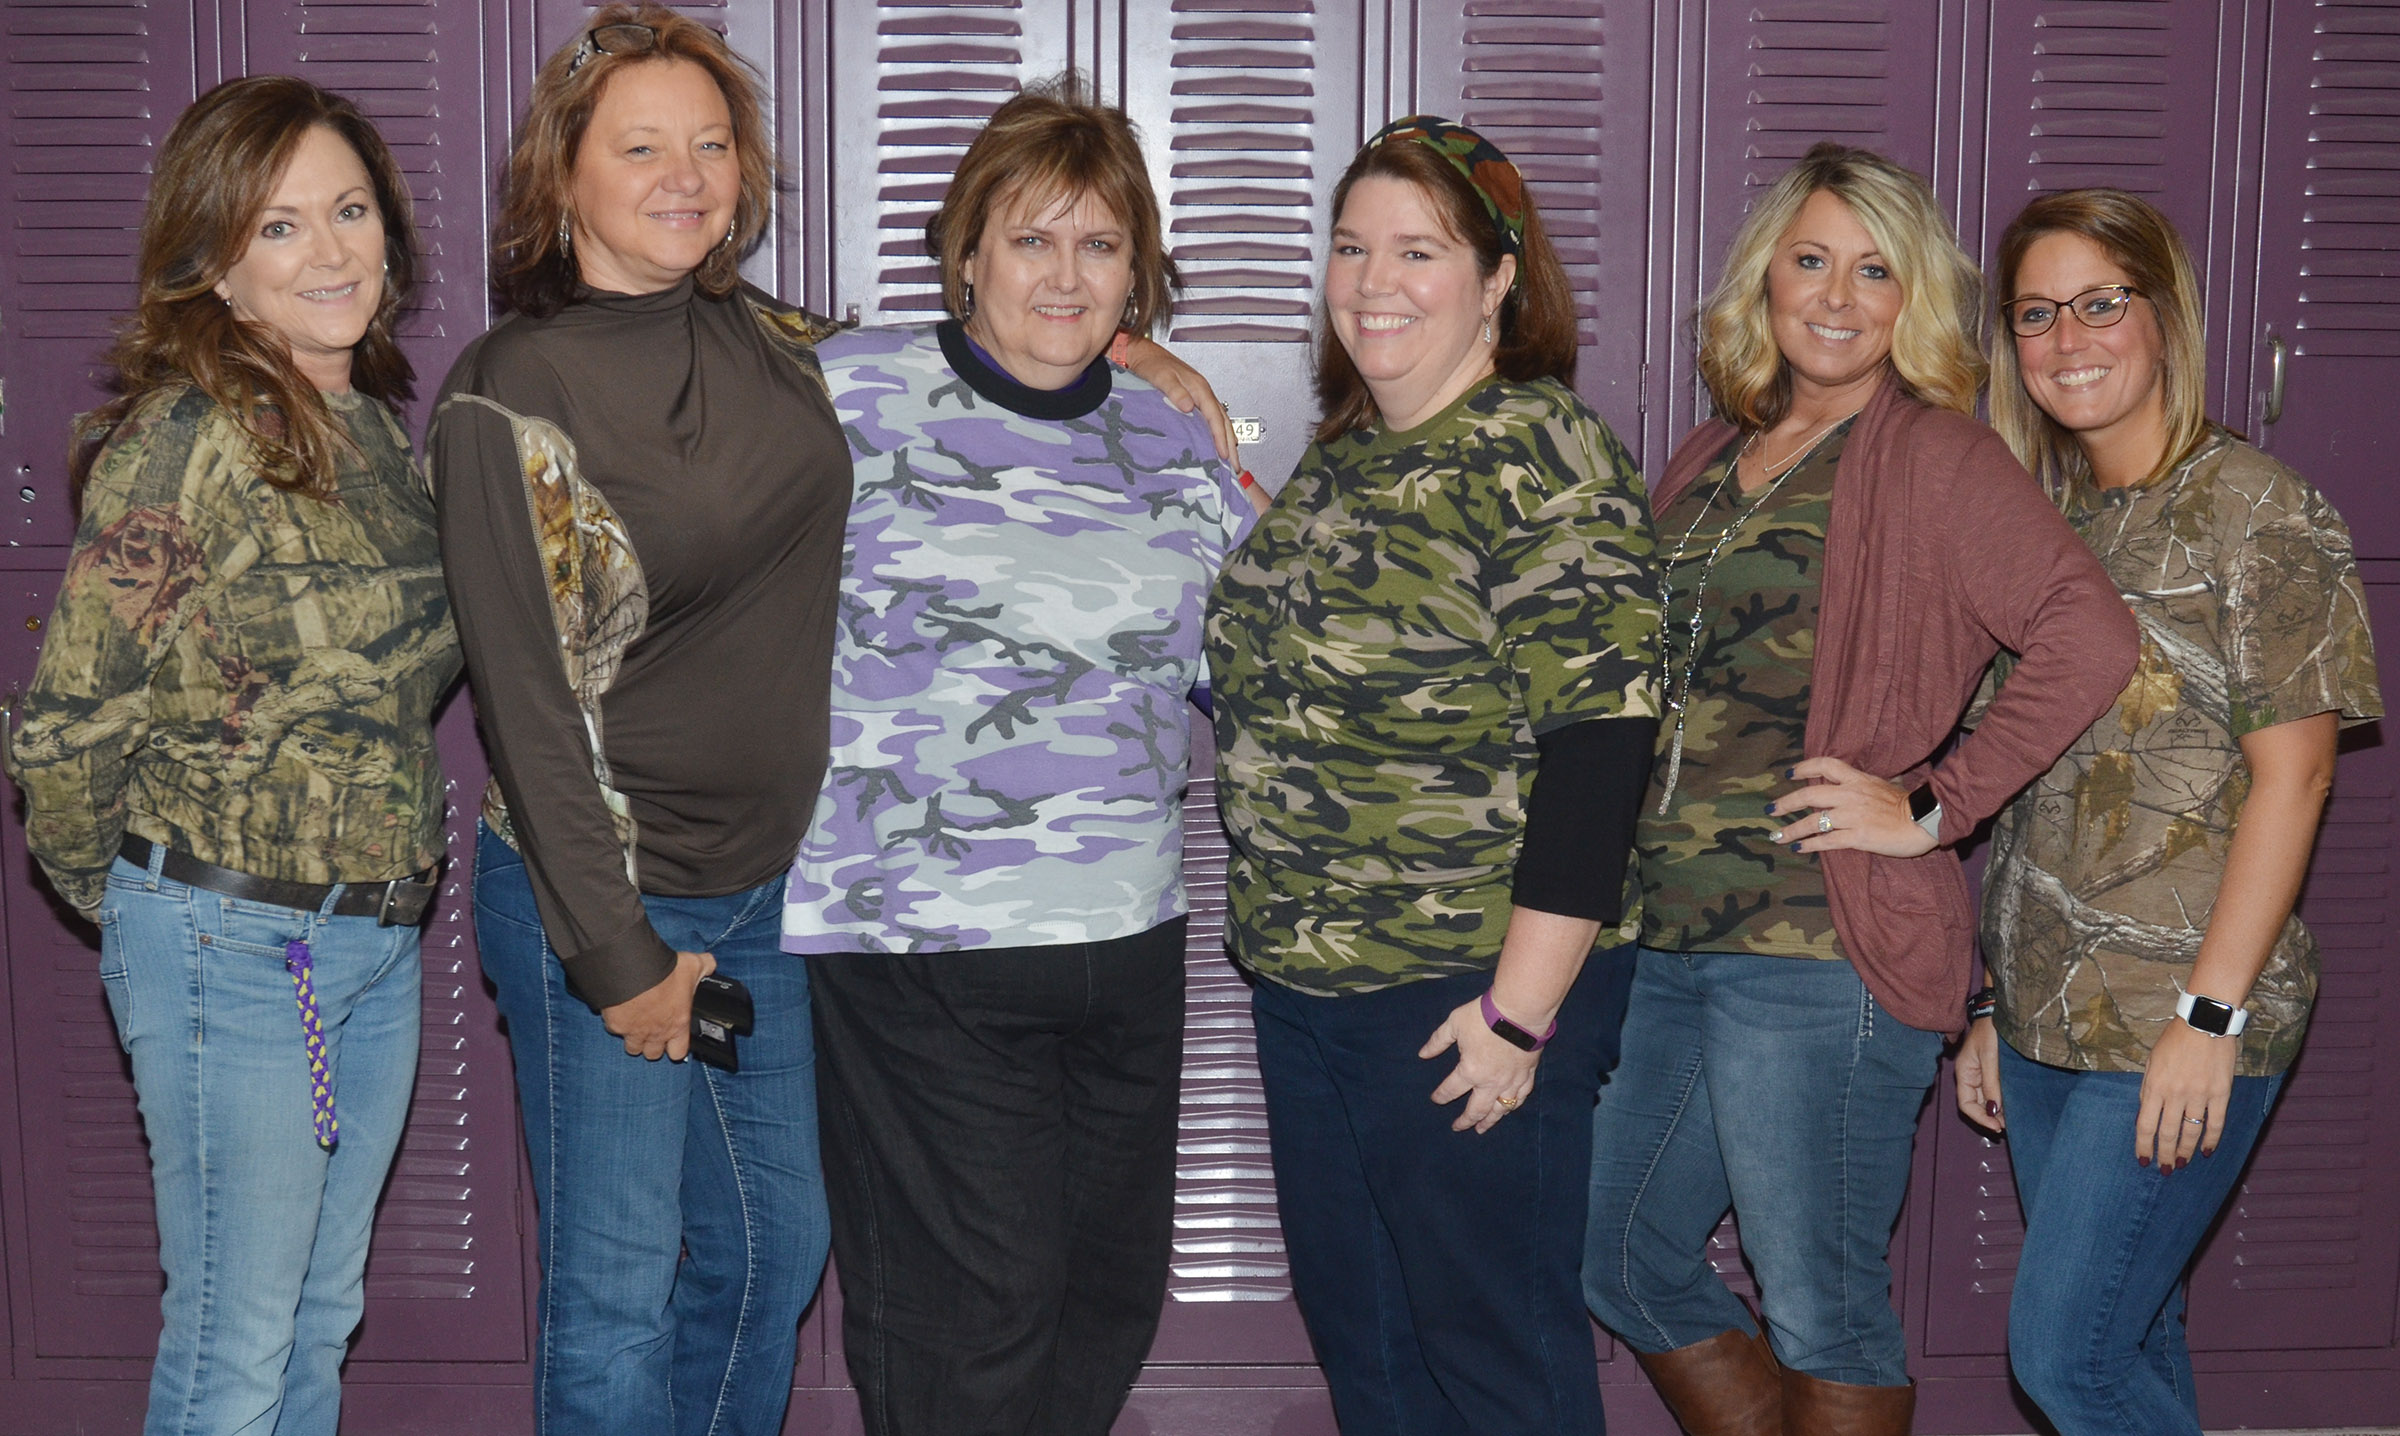 CMS teachers and administrators, from left, Melisa Morris, Sharon Harris, Debbie Edwards, Beth Wiedewitsch, Amanda Morris and Natalia Warren, dress in camouflage for Be All You Can Be: Drug Free Day.